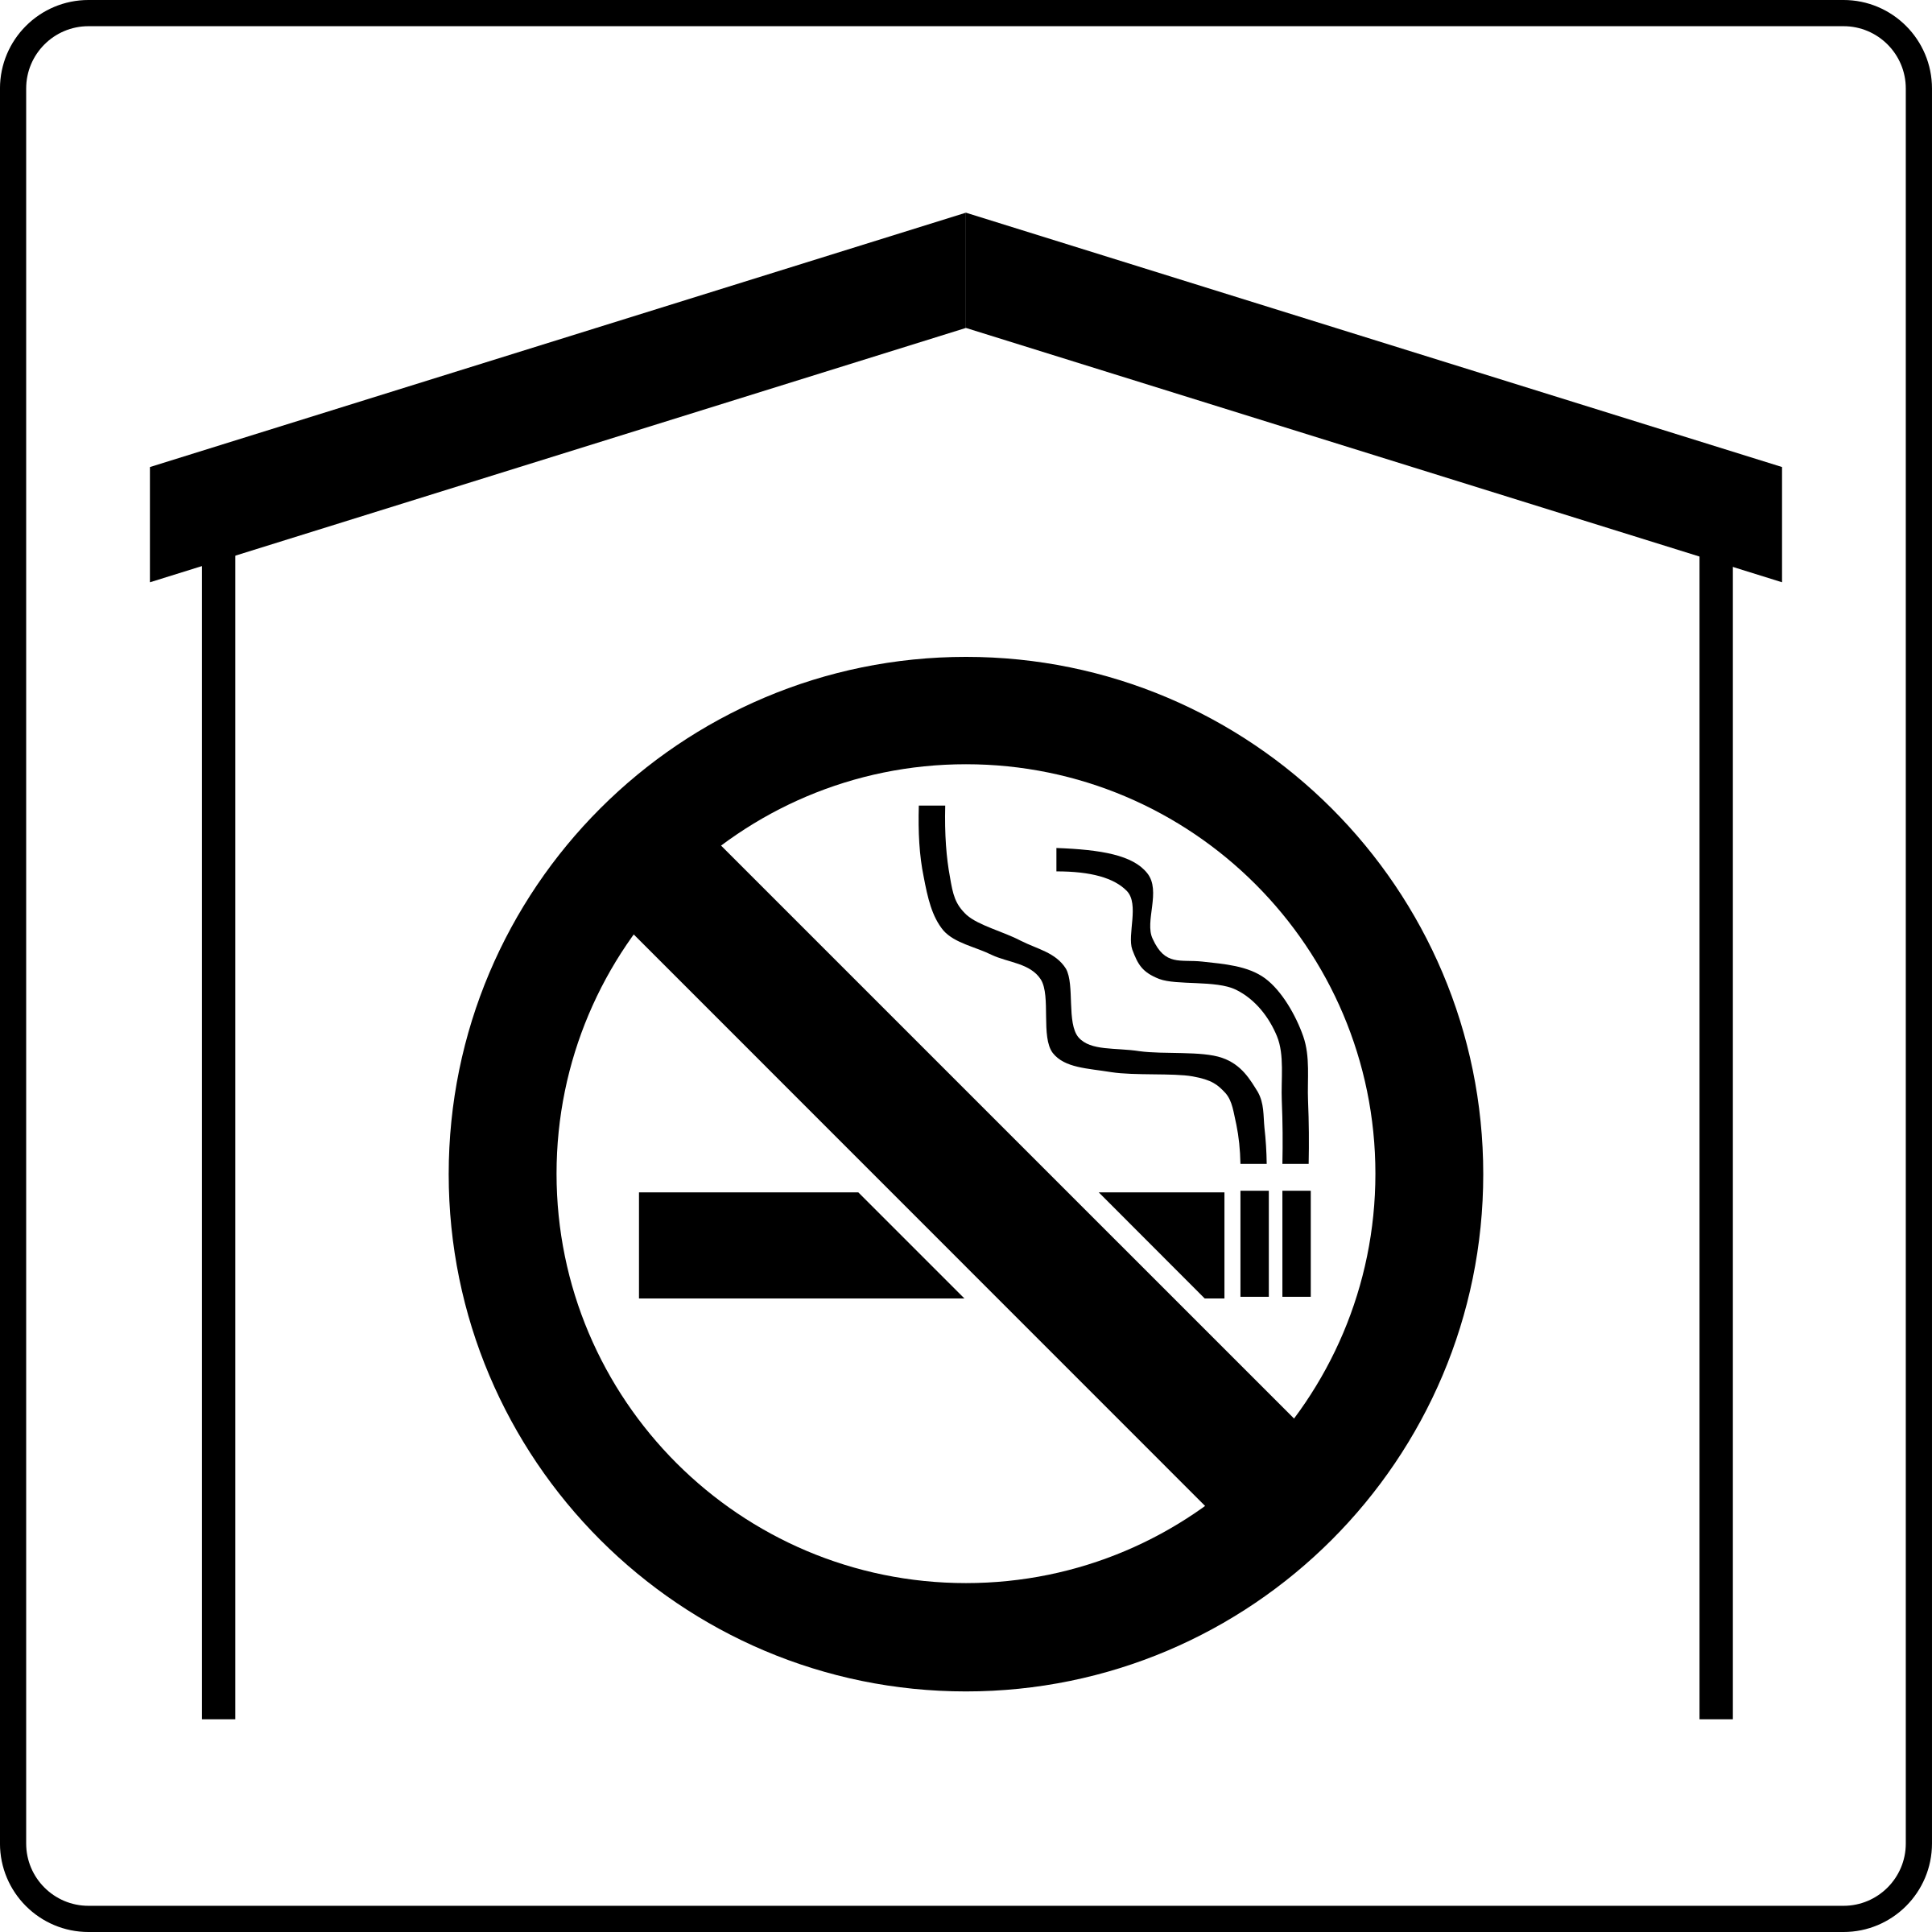 Hotel Icon No Smoking In Room by Gerald_G